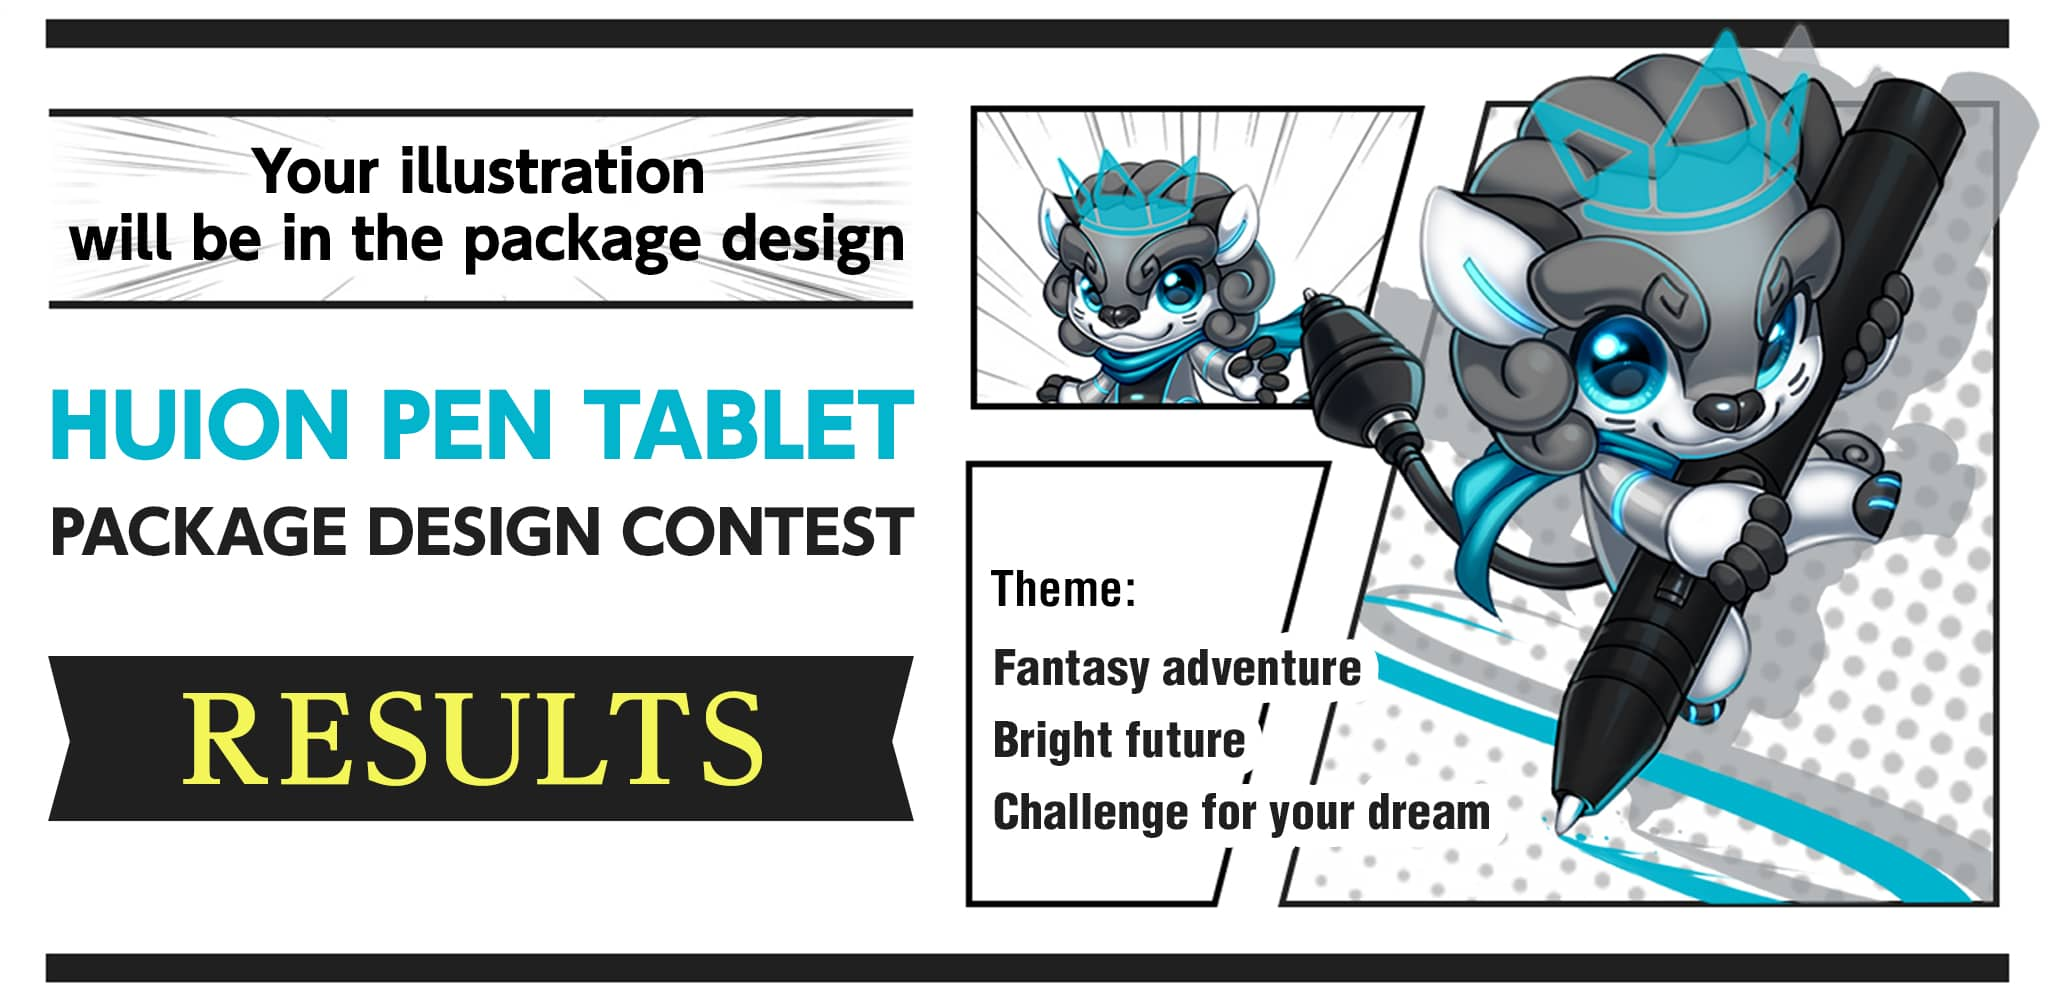 HUION Pen Tablet Package Design Contest Results | Contest - ART street by MediBang